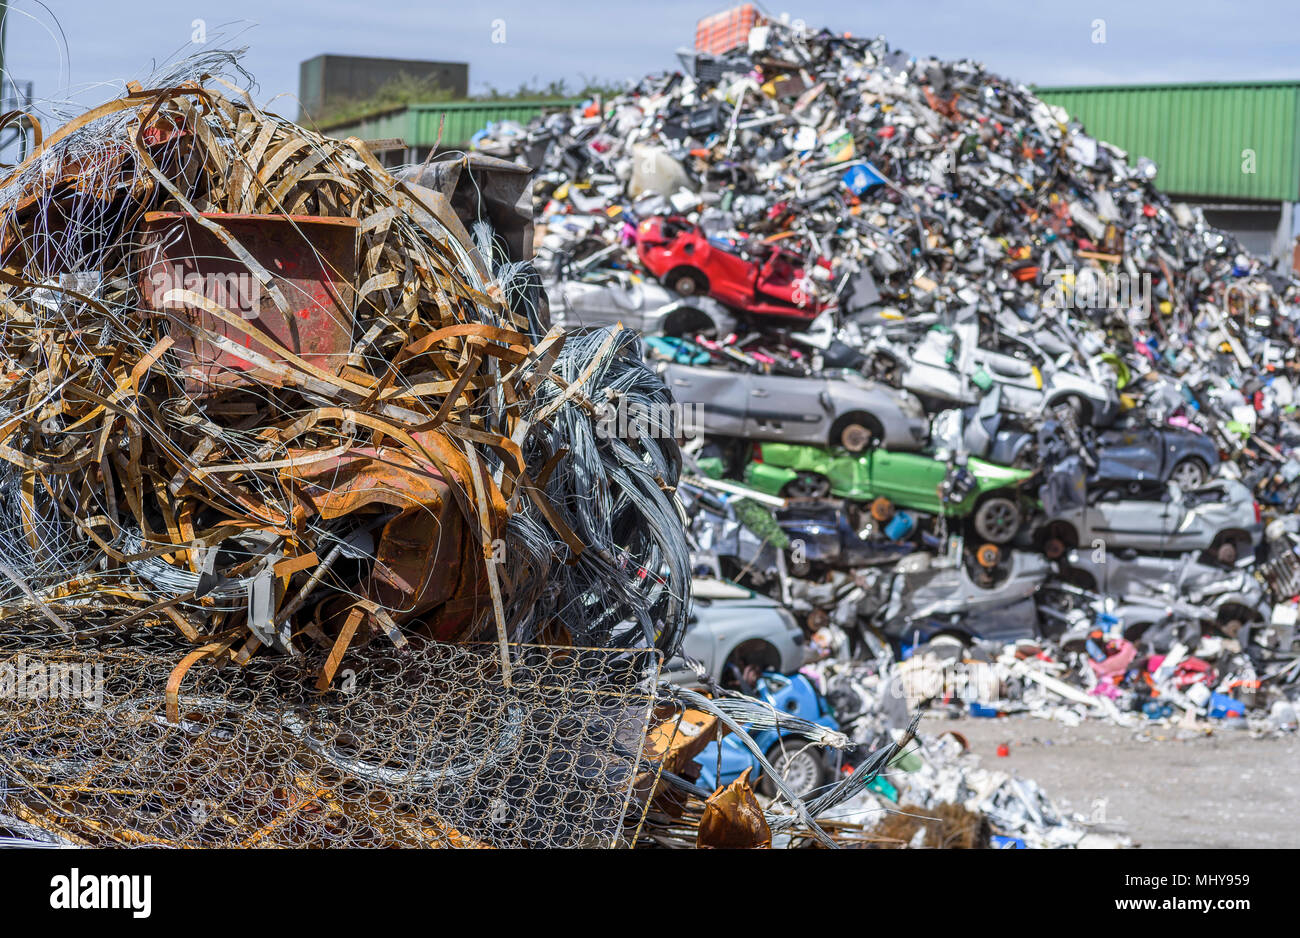 Old Cars Crushed Scrap Metal Stock Photos & Old Cars Crushed Scrap ...